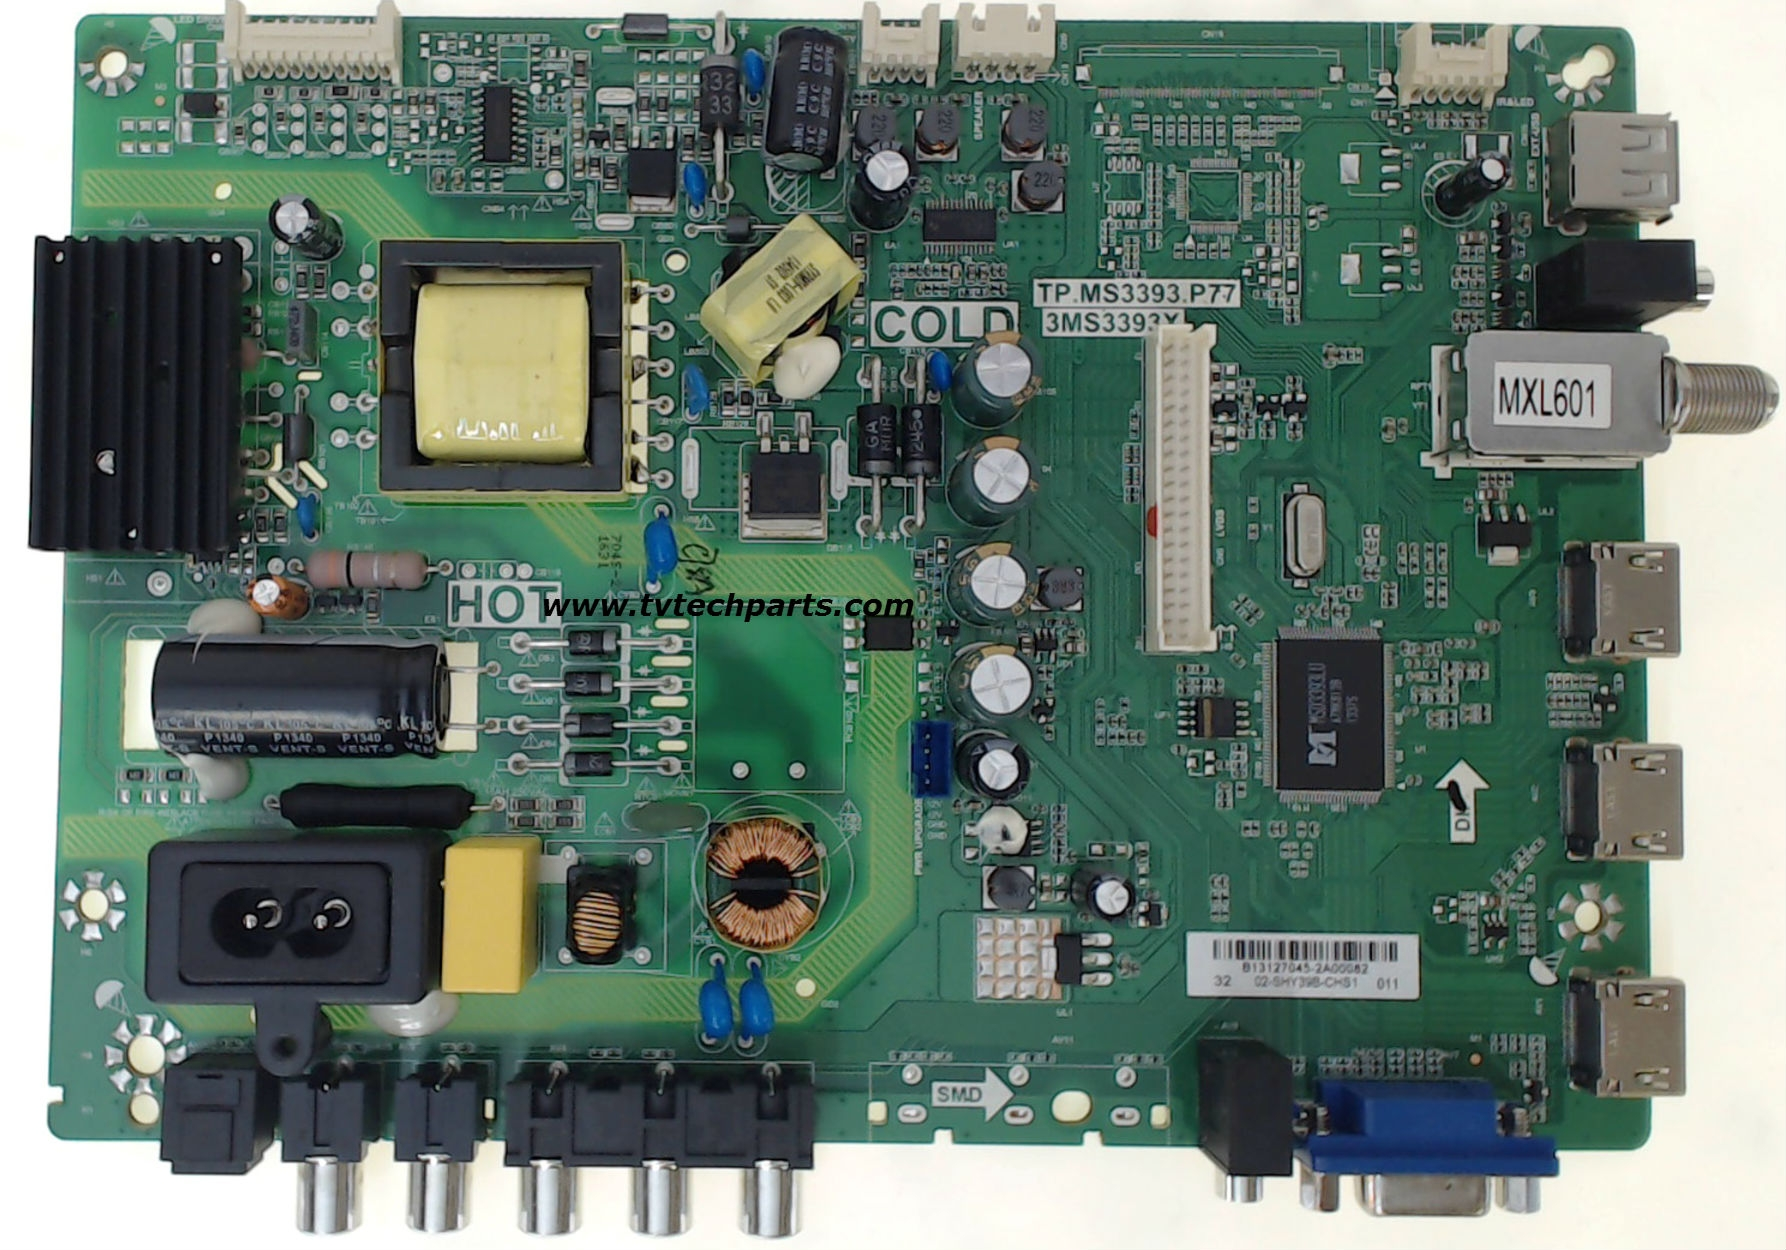 Sanyo TV Model DP32D53 Main Audio Video Power Supply Board Part Number 02-SHY39B-CHS1